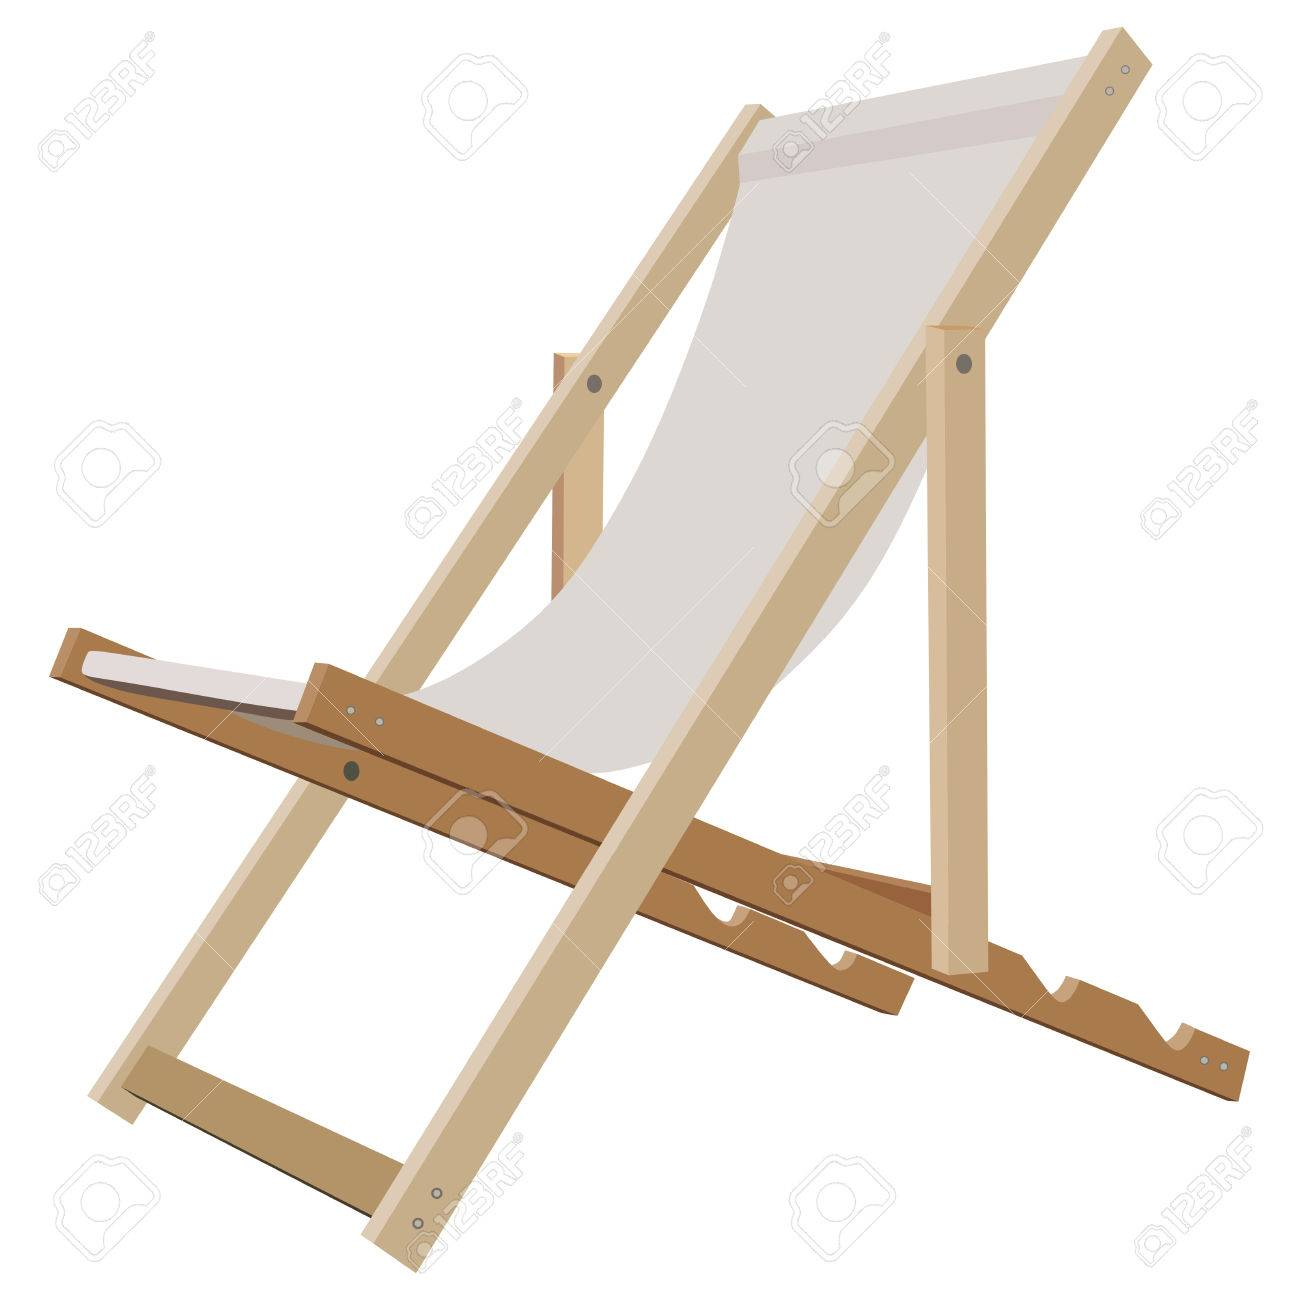 Beach lounge chair - Wooden Beach Lounge Chair On A White Background Stock Vector 40366633